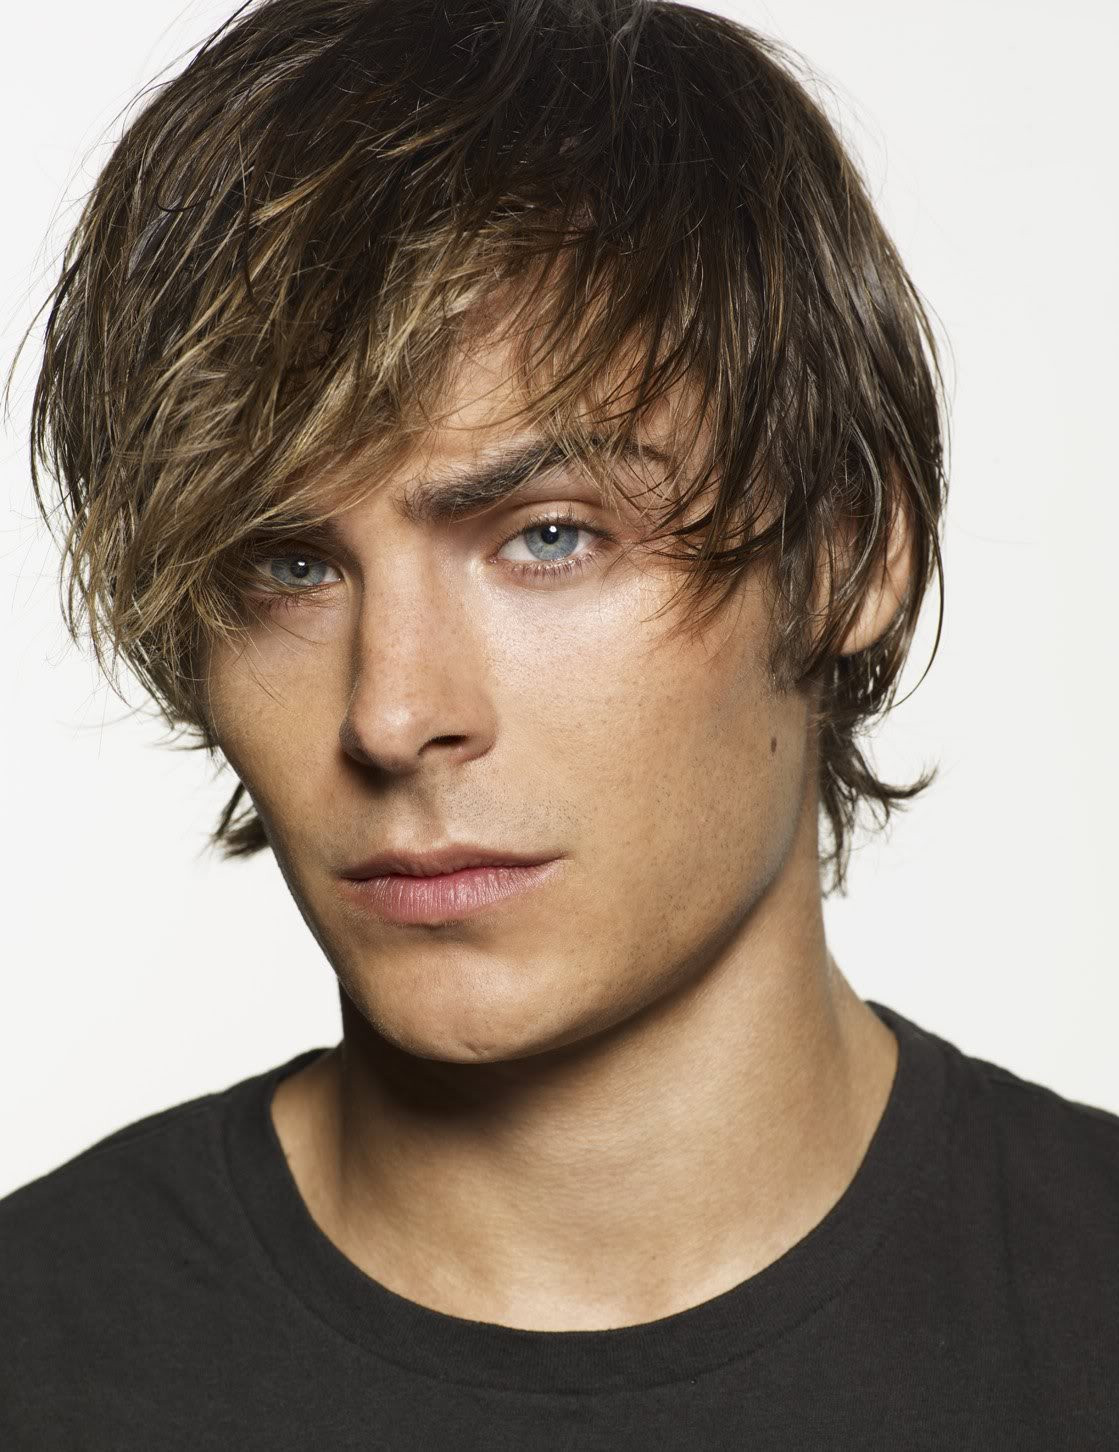 Best ideas about Boys Haircuts Longer . Save or Pin Hairstyles for Men 2014 Medium Now.